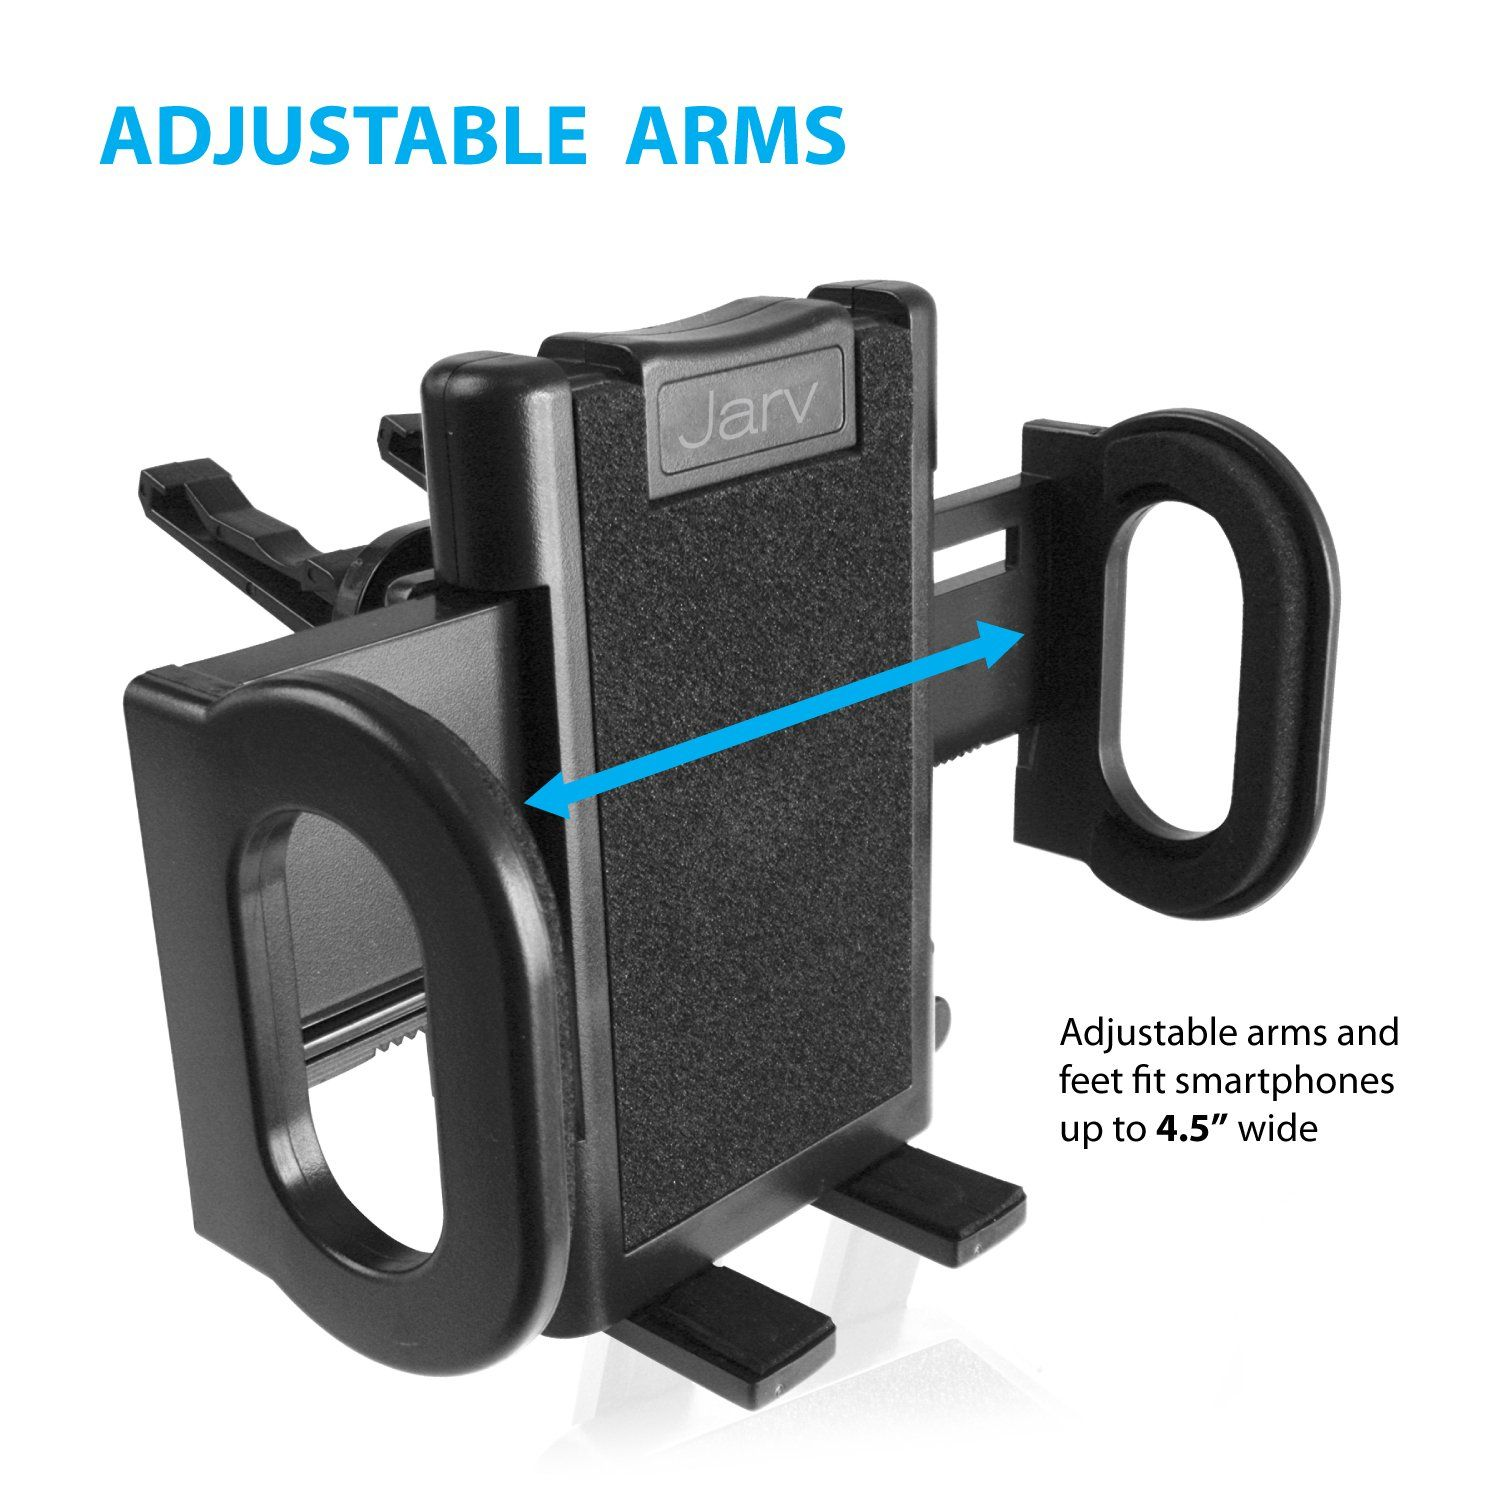 Jarv Premium Flexible Air Vent for Apple iPhone X 8 7 6S 6 Plus Samsung Galaxy S8 S7 S6 Galaxy Note 8 5 Edge Plus Phones w Cushioned Car Mount Holder with